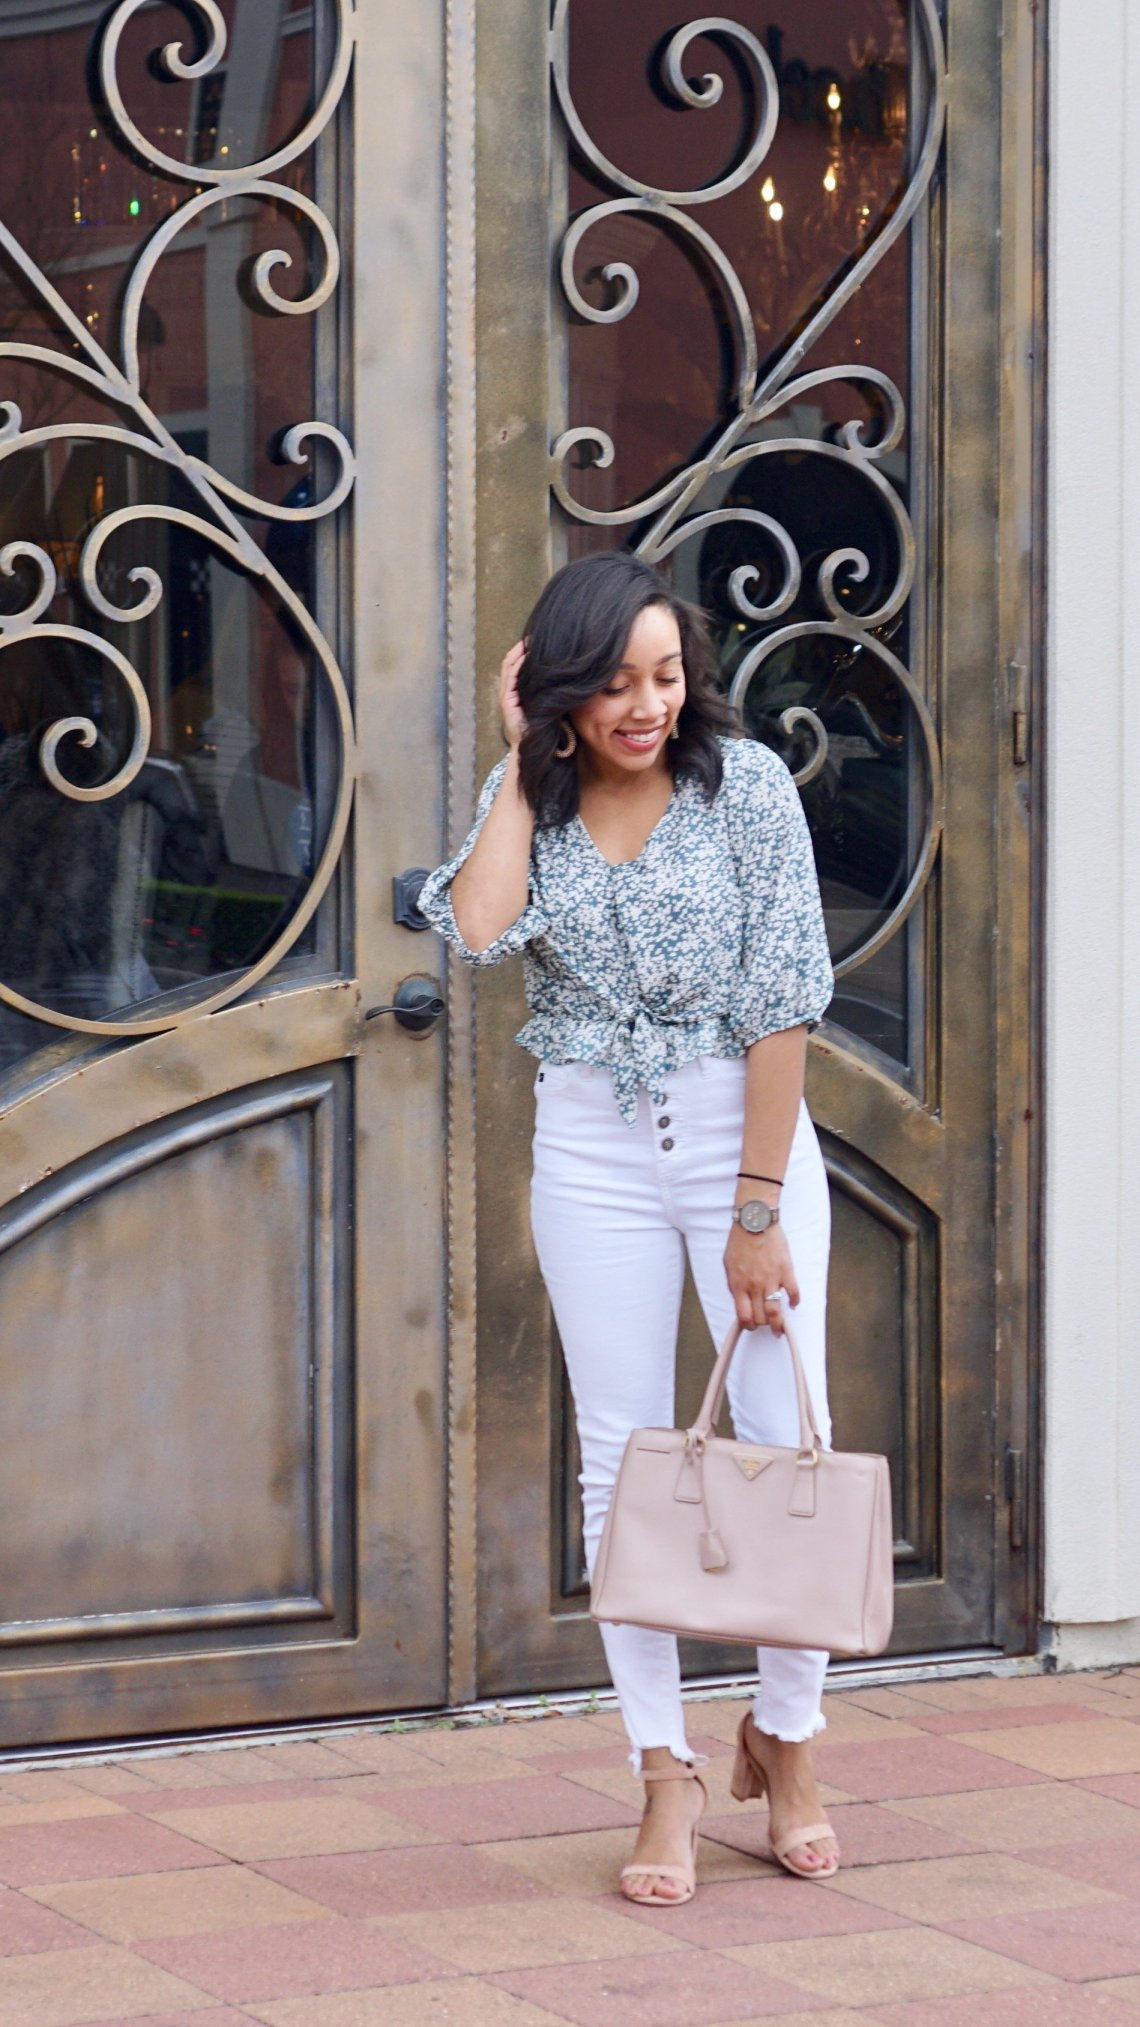 women's dressy blouses, white skinny jeans high waisted, floral print tops blouses, white skinny jeans ripped, kancan jeans, button front jeans, skinny jeans, prada, bauble bar, accessories, spring fashion, Houston blogger, Houston, #styleinspo